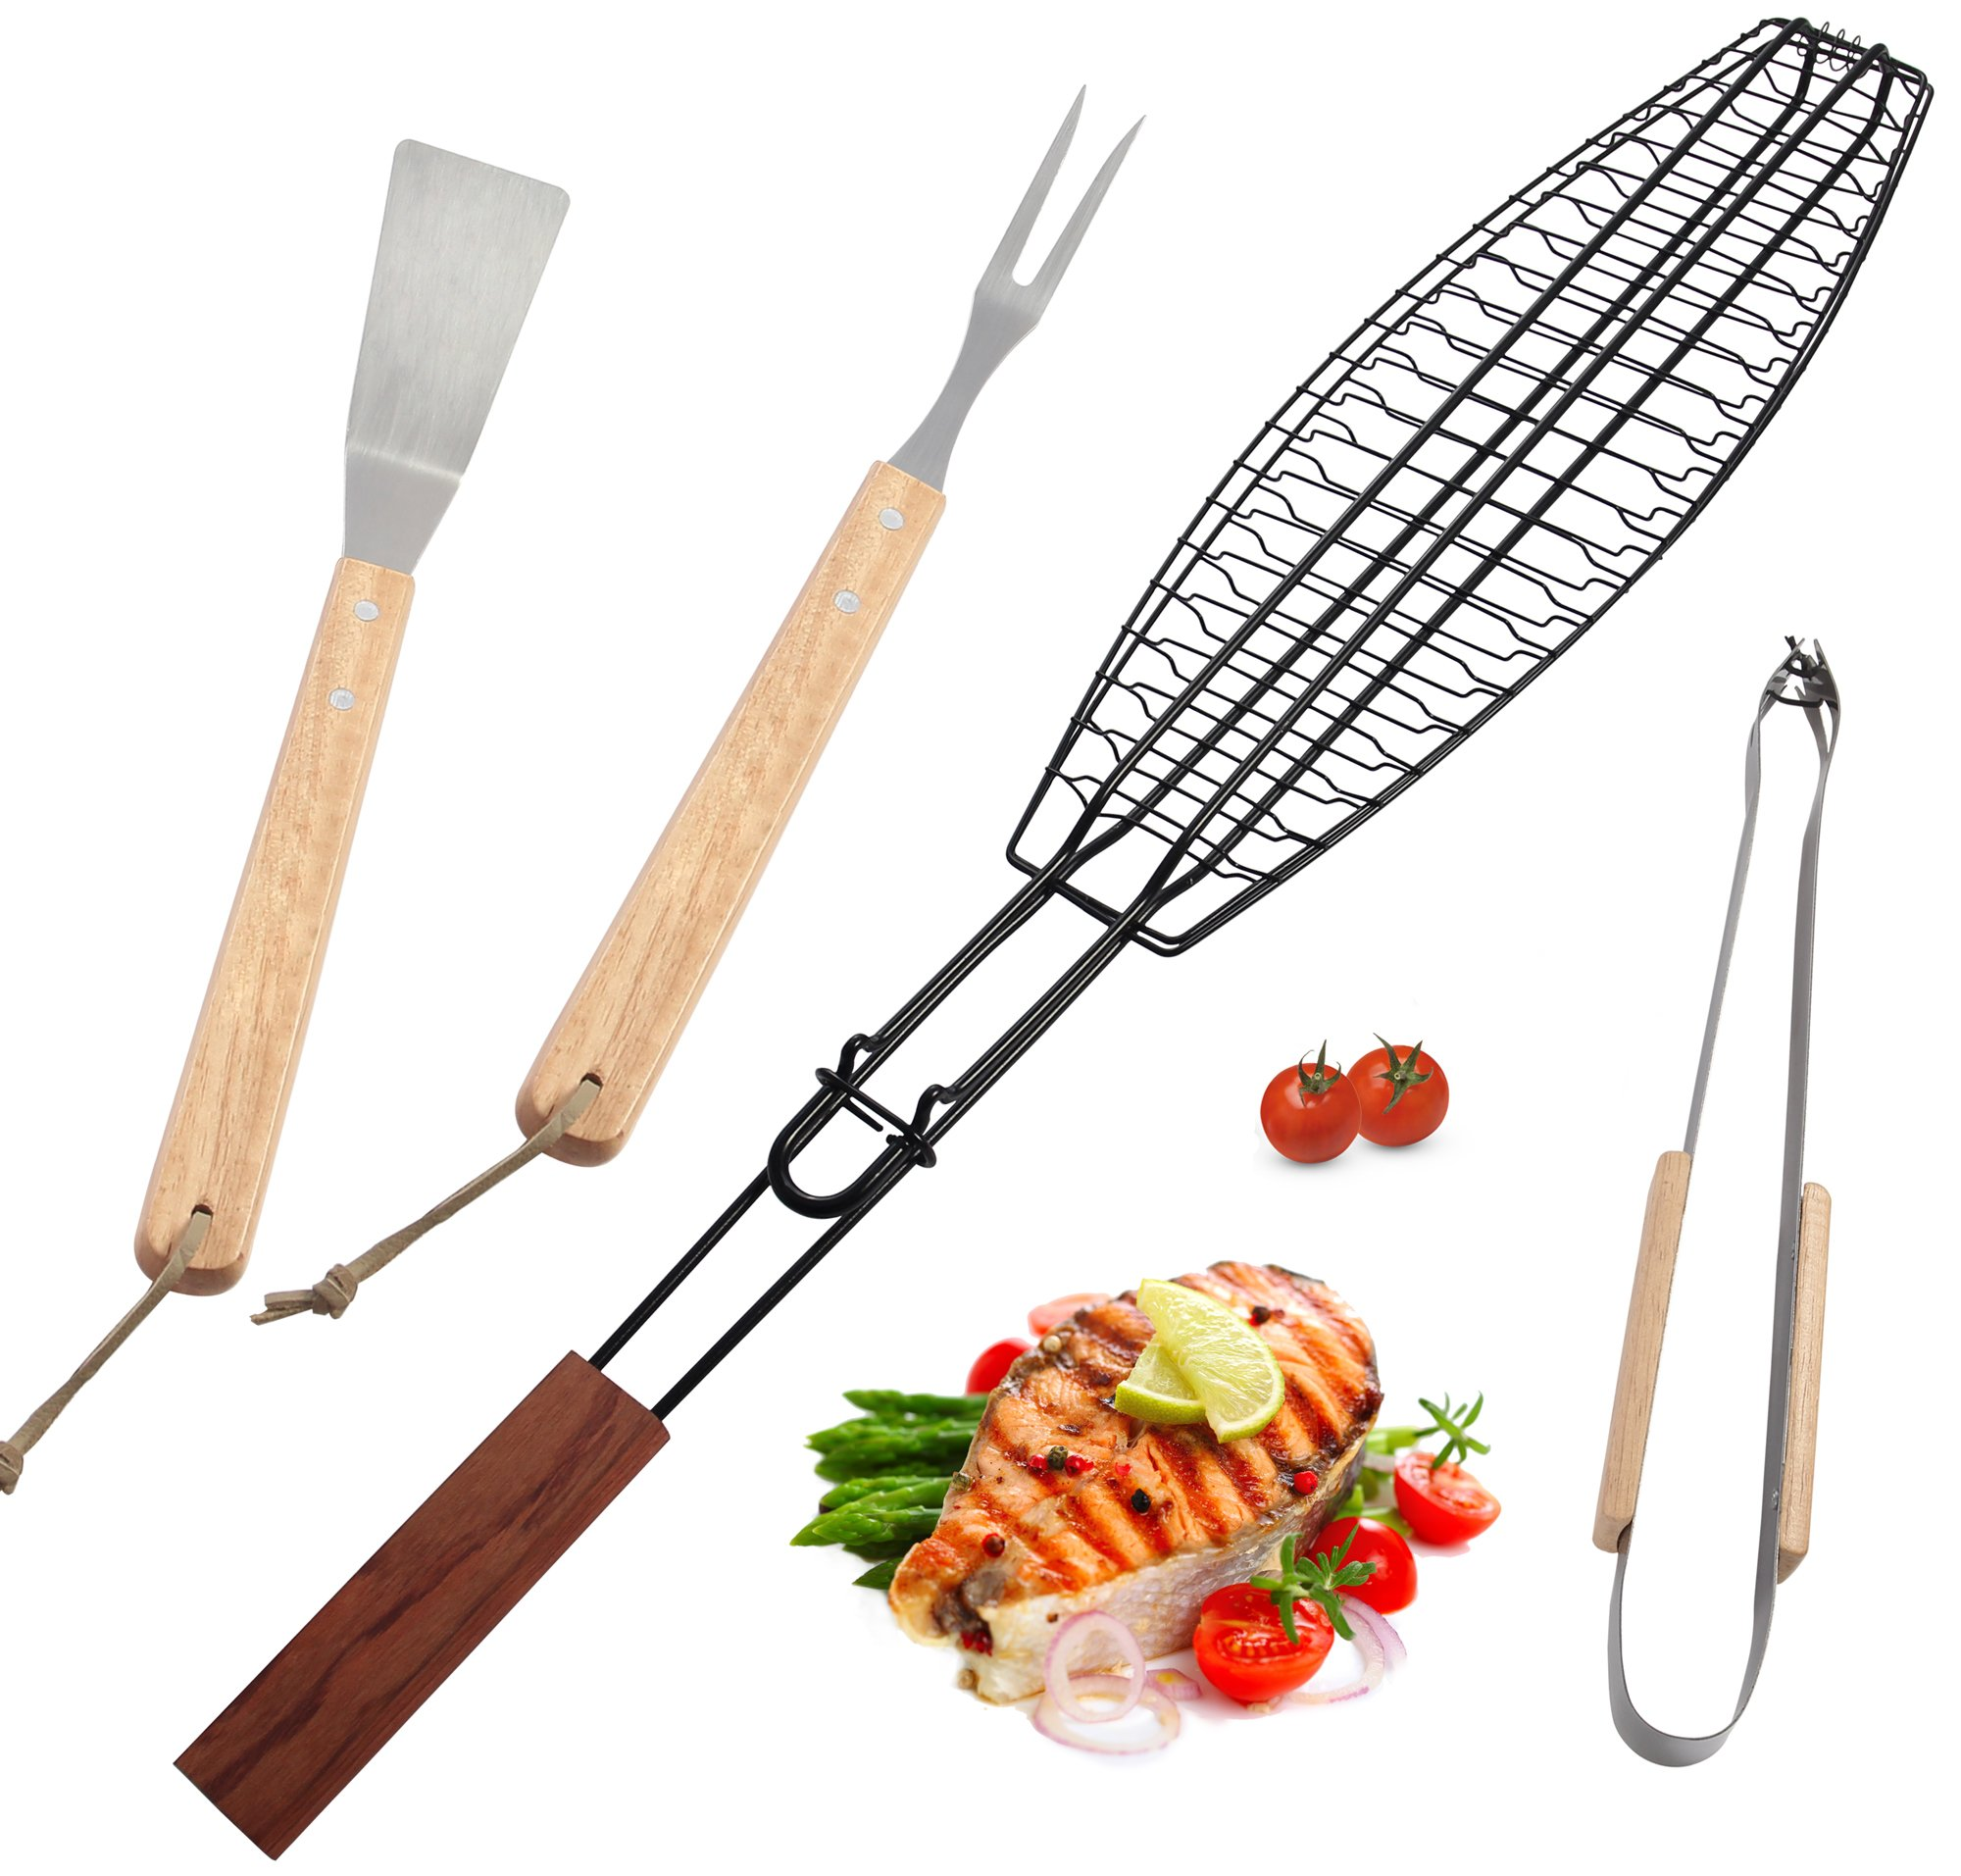 ROMANTICIST Non Stick Extra Large Fish Grill Basket Grilling Any Fish up to 16-4pc Heavy Duty Stainless Steel Grill Accessories Set - Grilling Basket Spatula Fork Tongs - Grill Gift Men